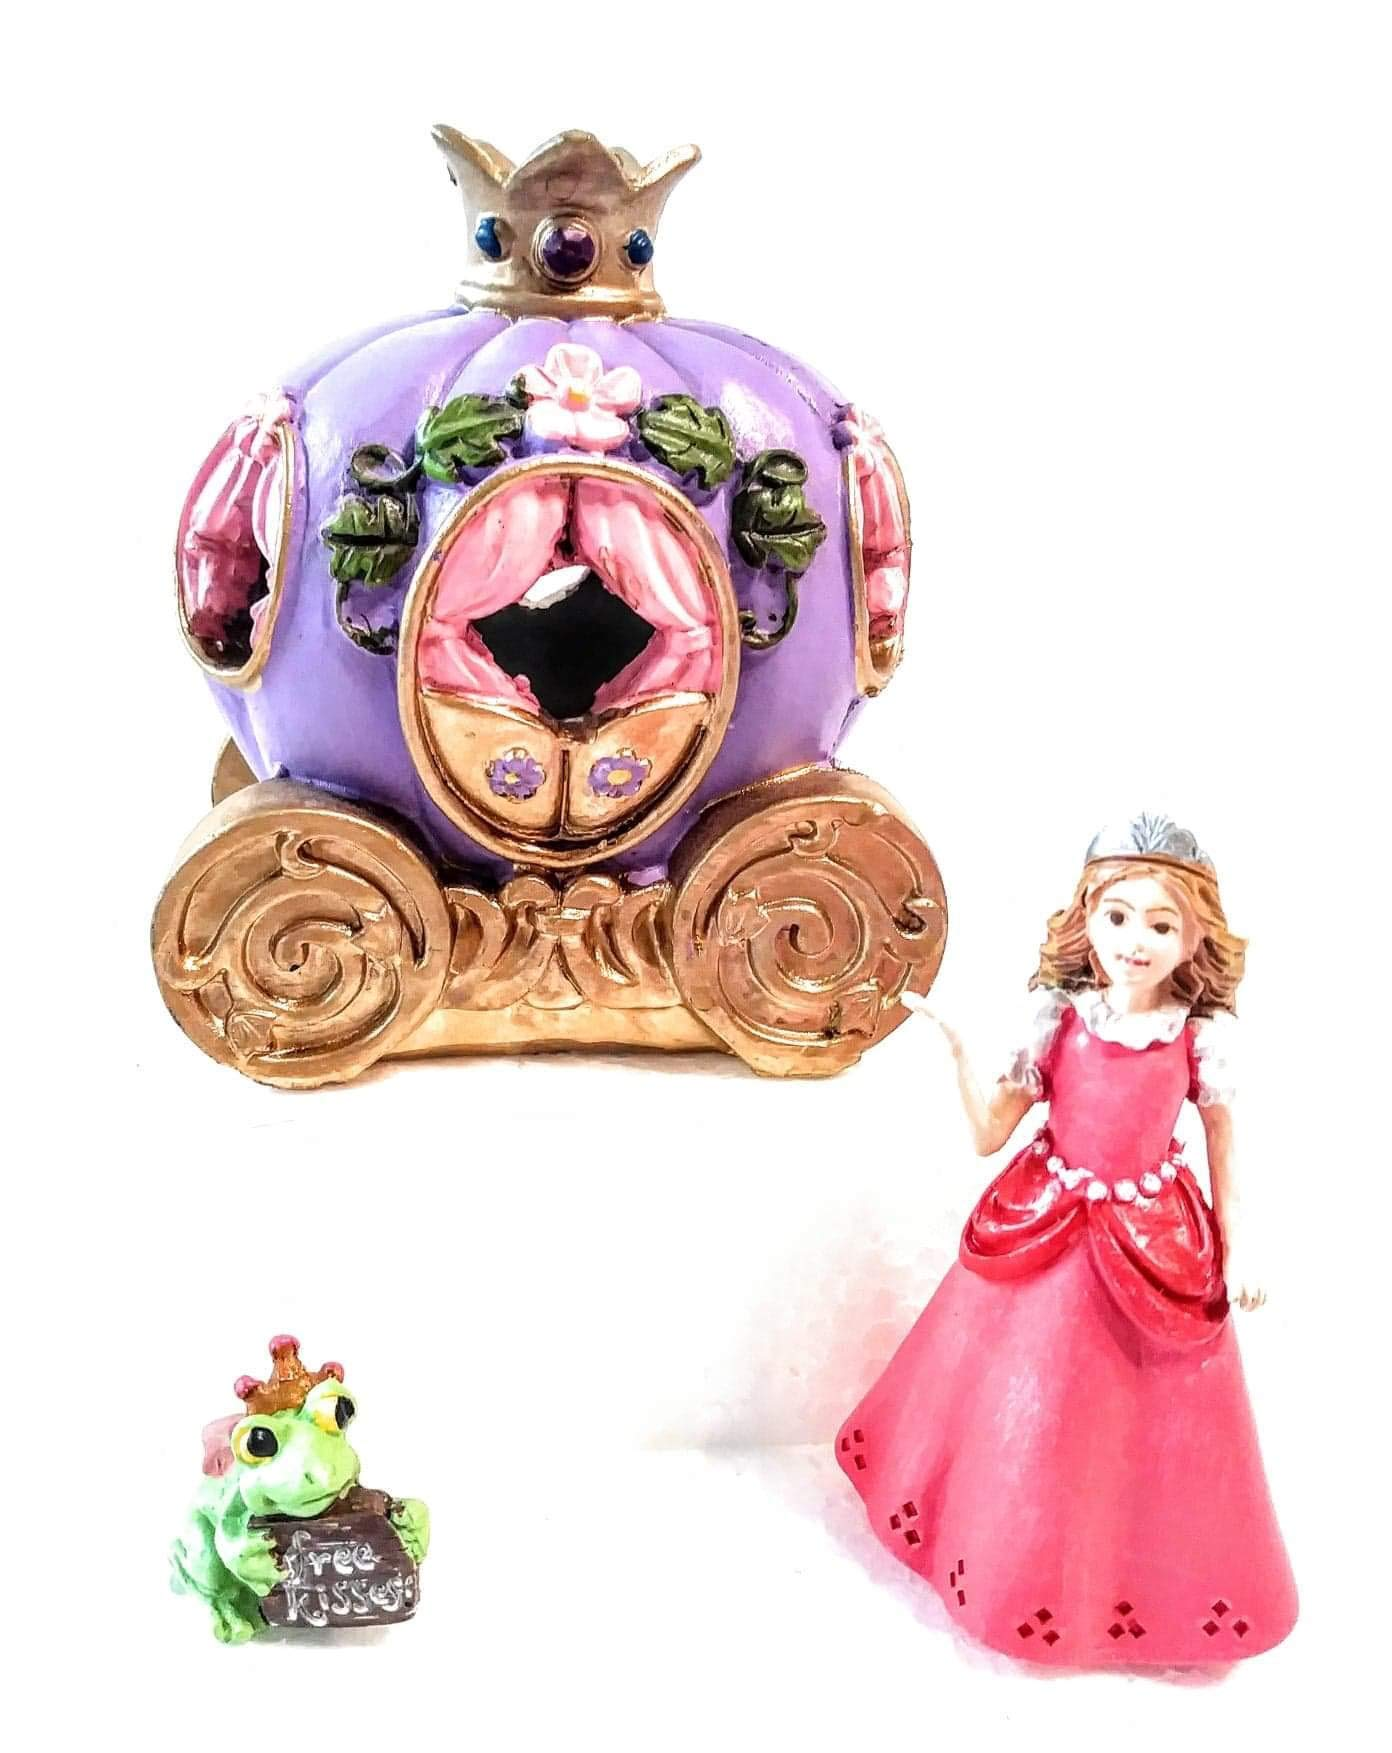 Cinderella Carriage with Princess in Pink Dress and Frog Prince Holding a ''Kiss Me'' Sign